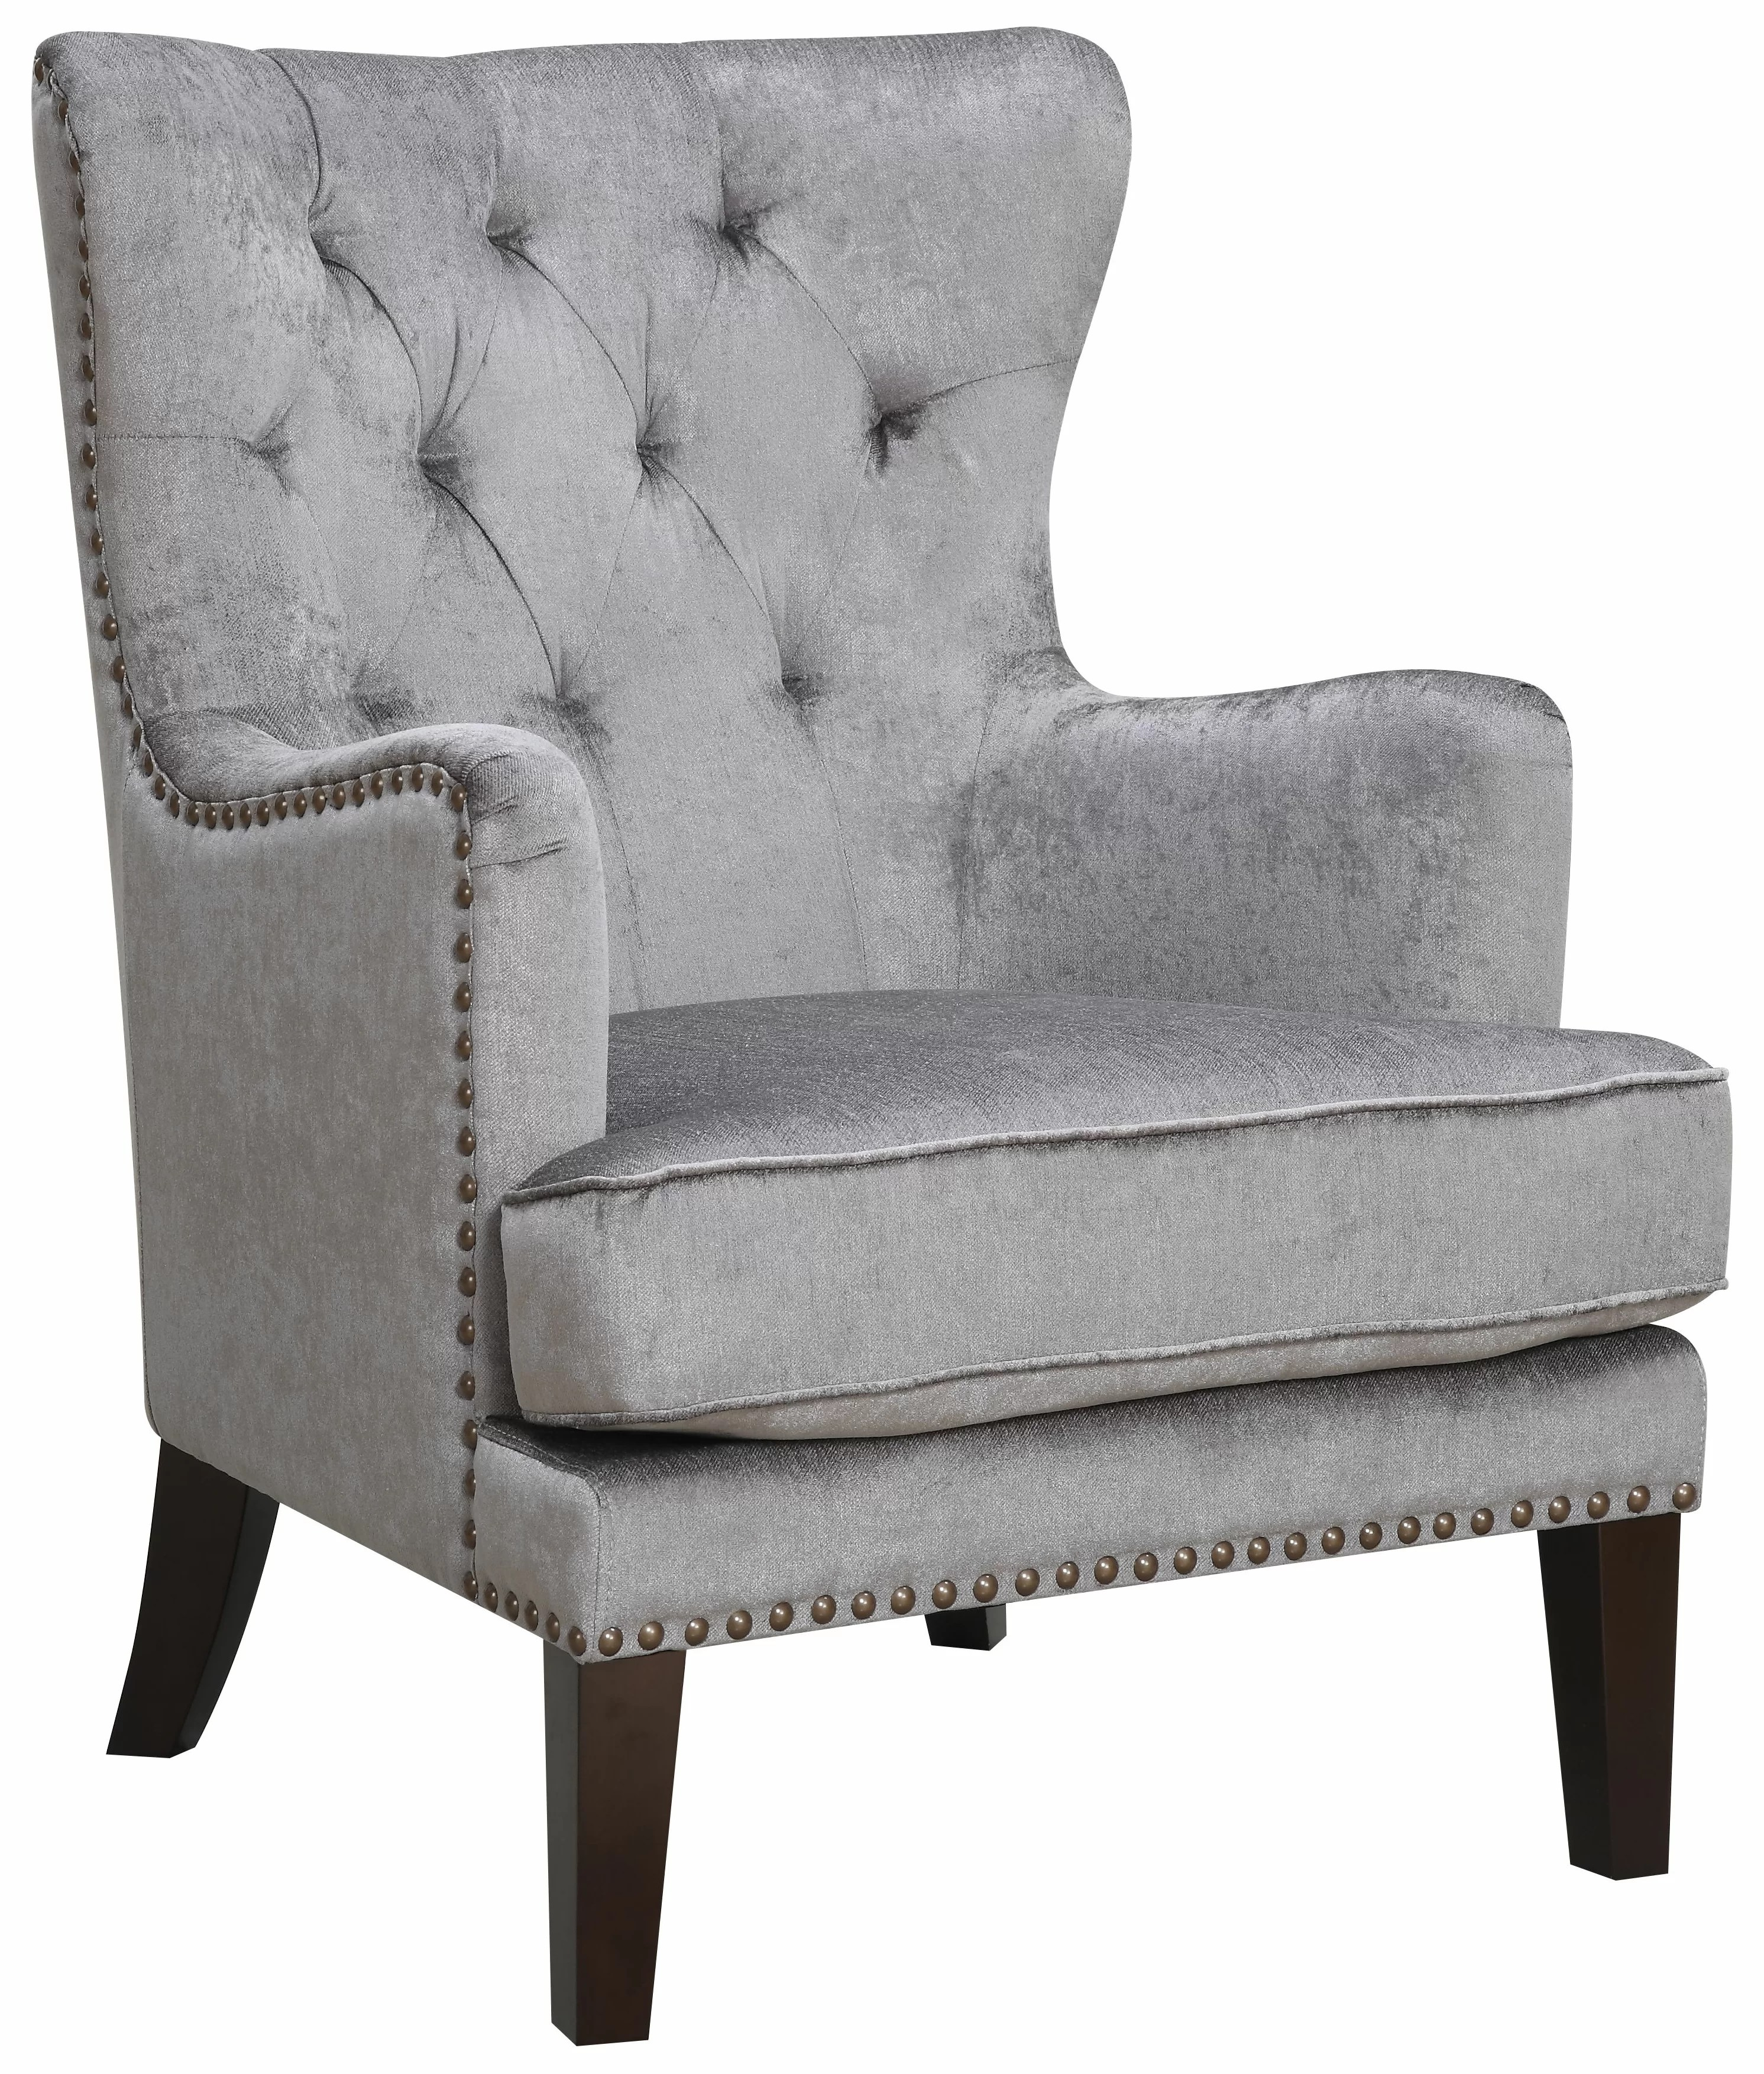 Wingback Tufted Chair Isabella Wingback Chair